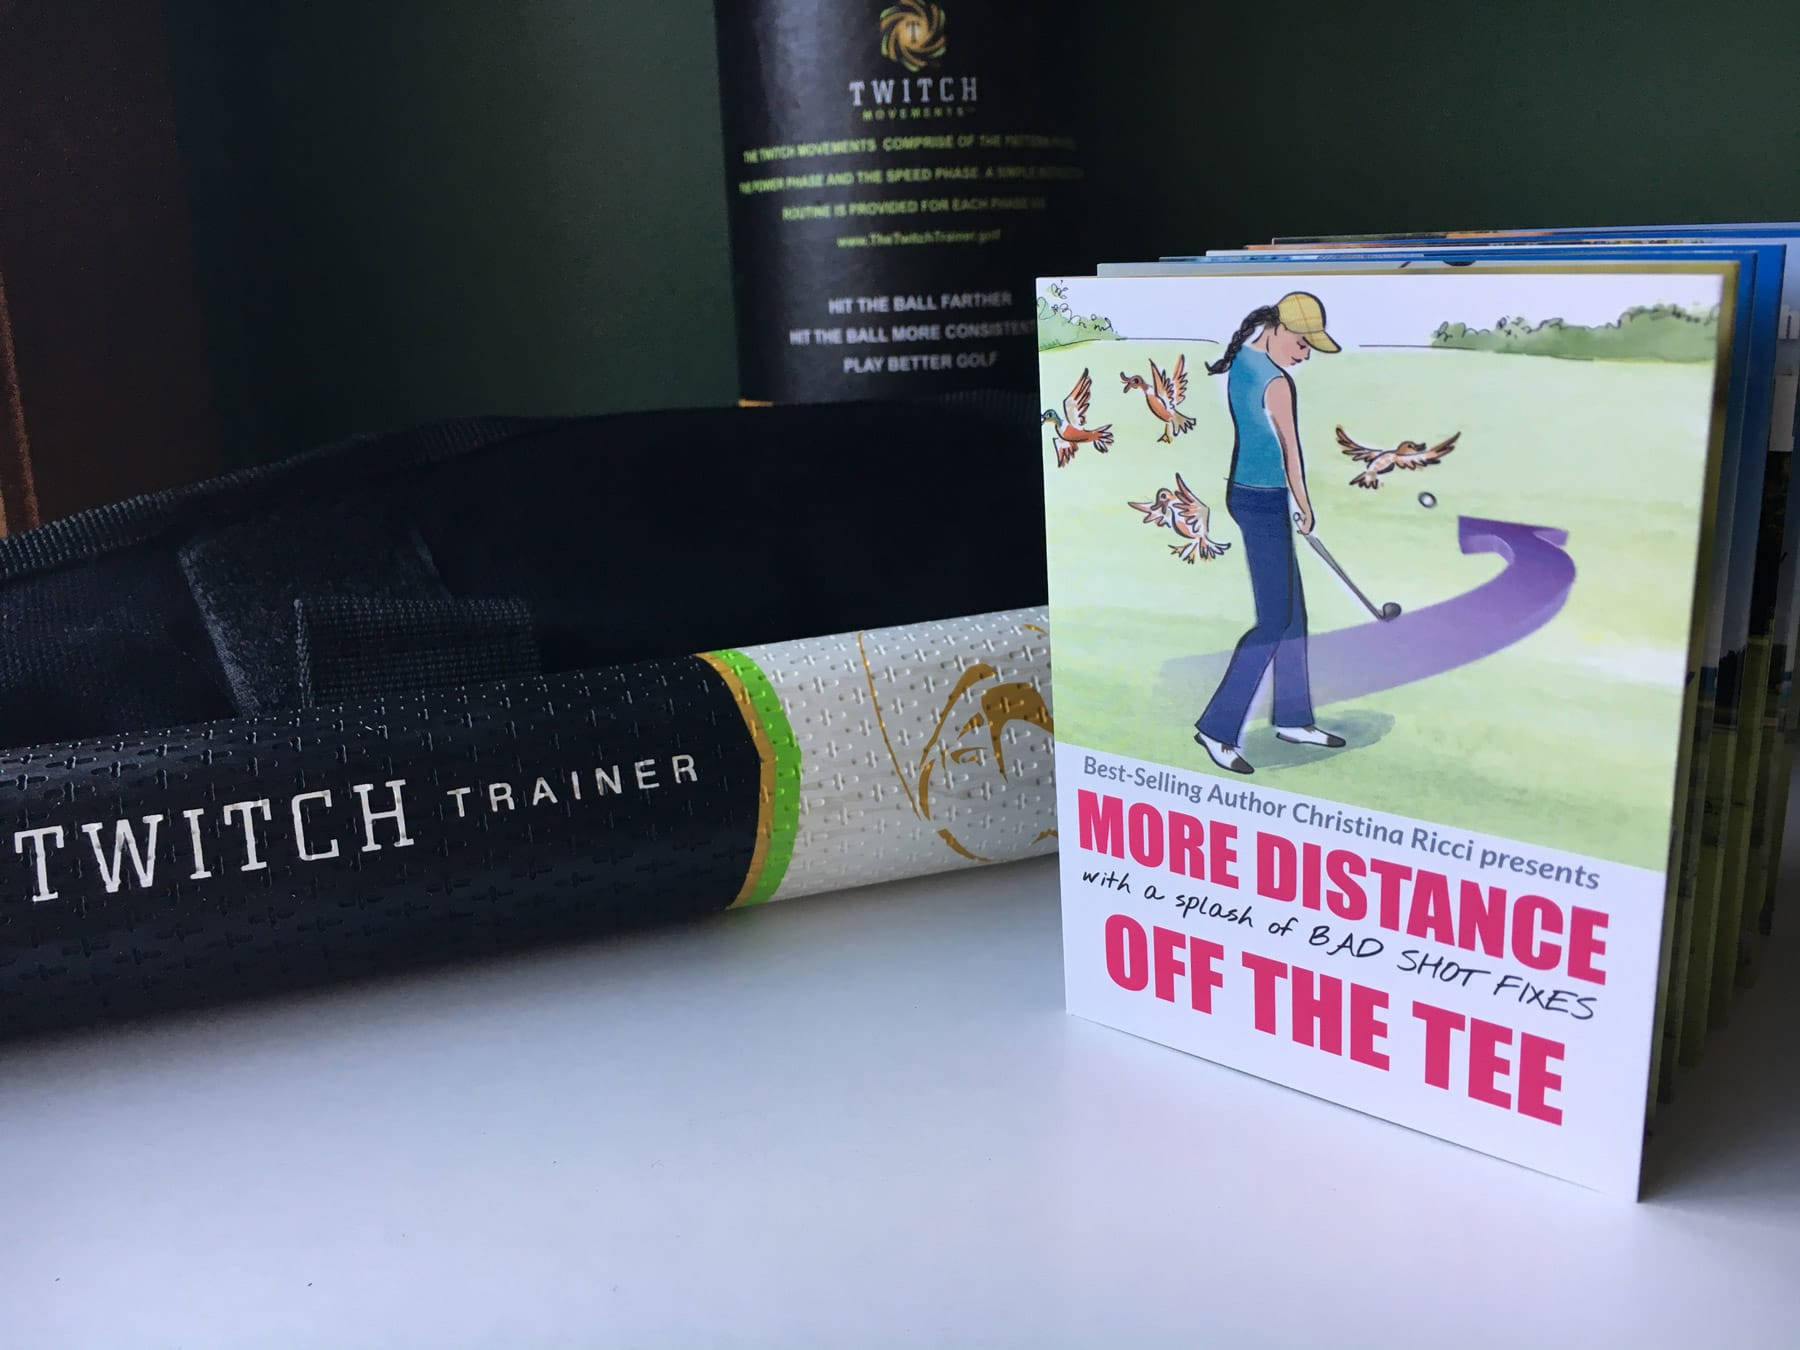 Shop Tee & Fairway Training Sets